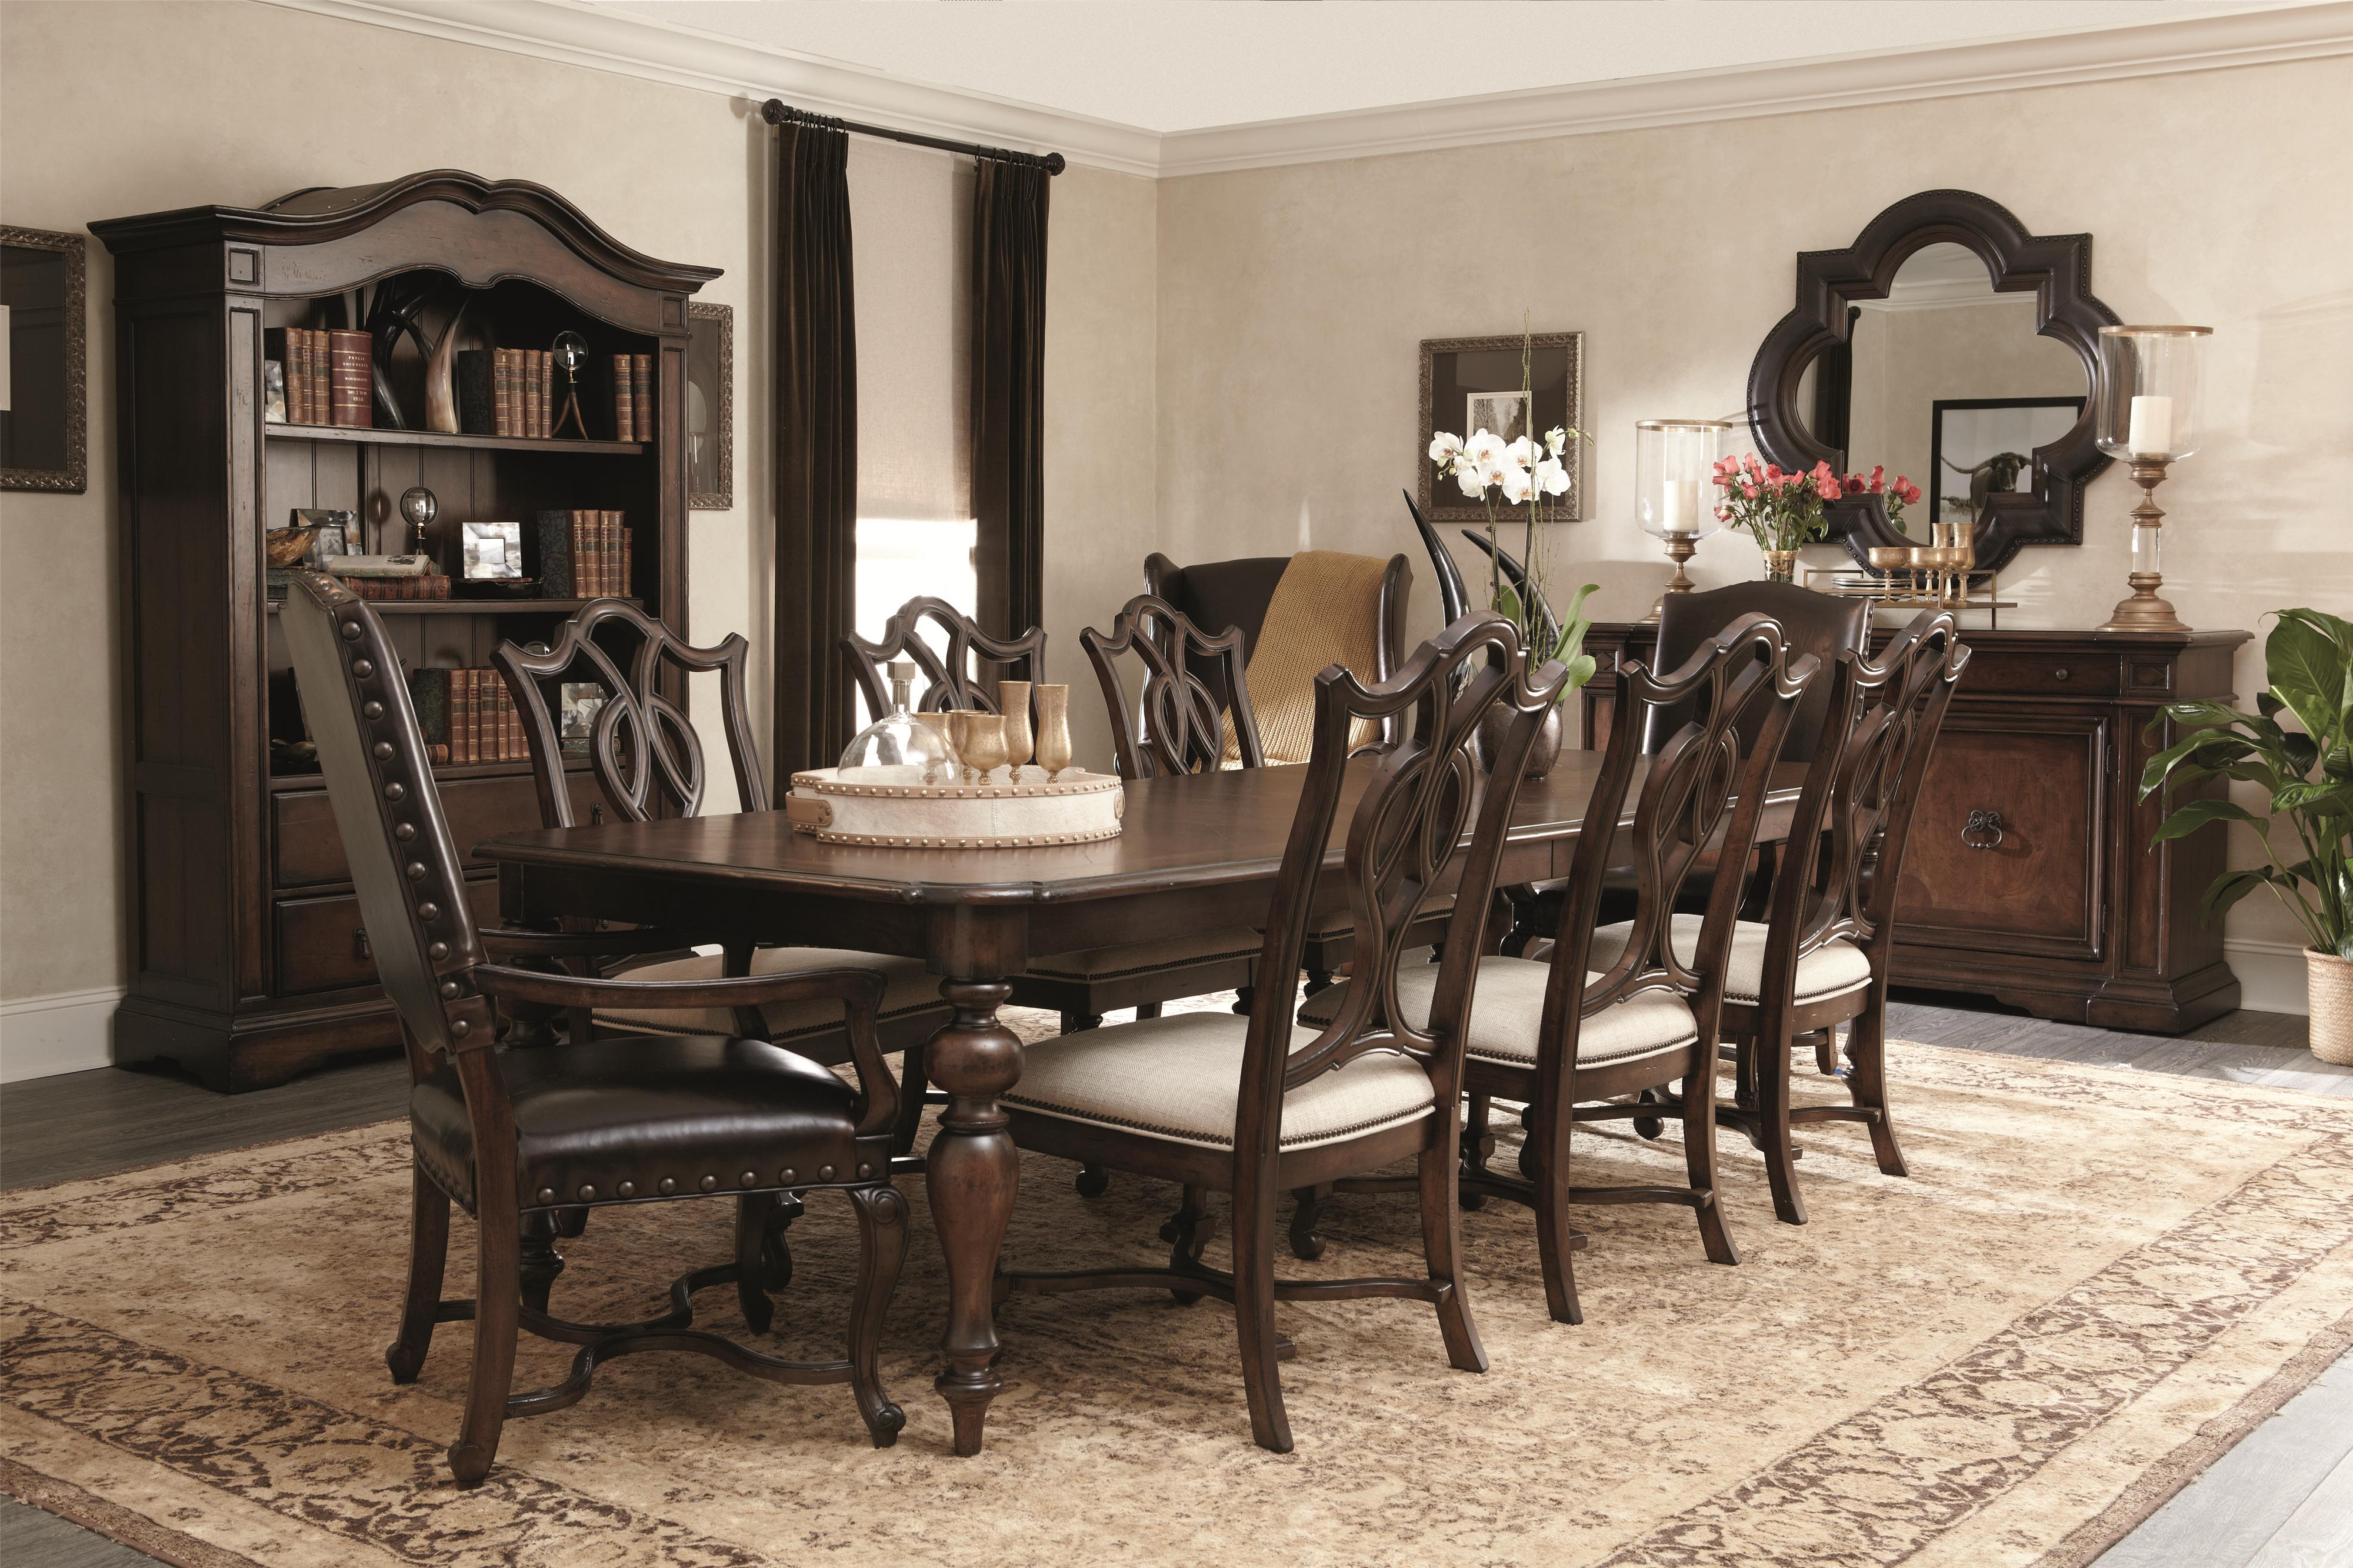 Pleasing Bernhardt Paris Collection Dining Room Zt78 Roccommunity Home Interior And Landscaping Ferensignezvosmurscom